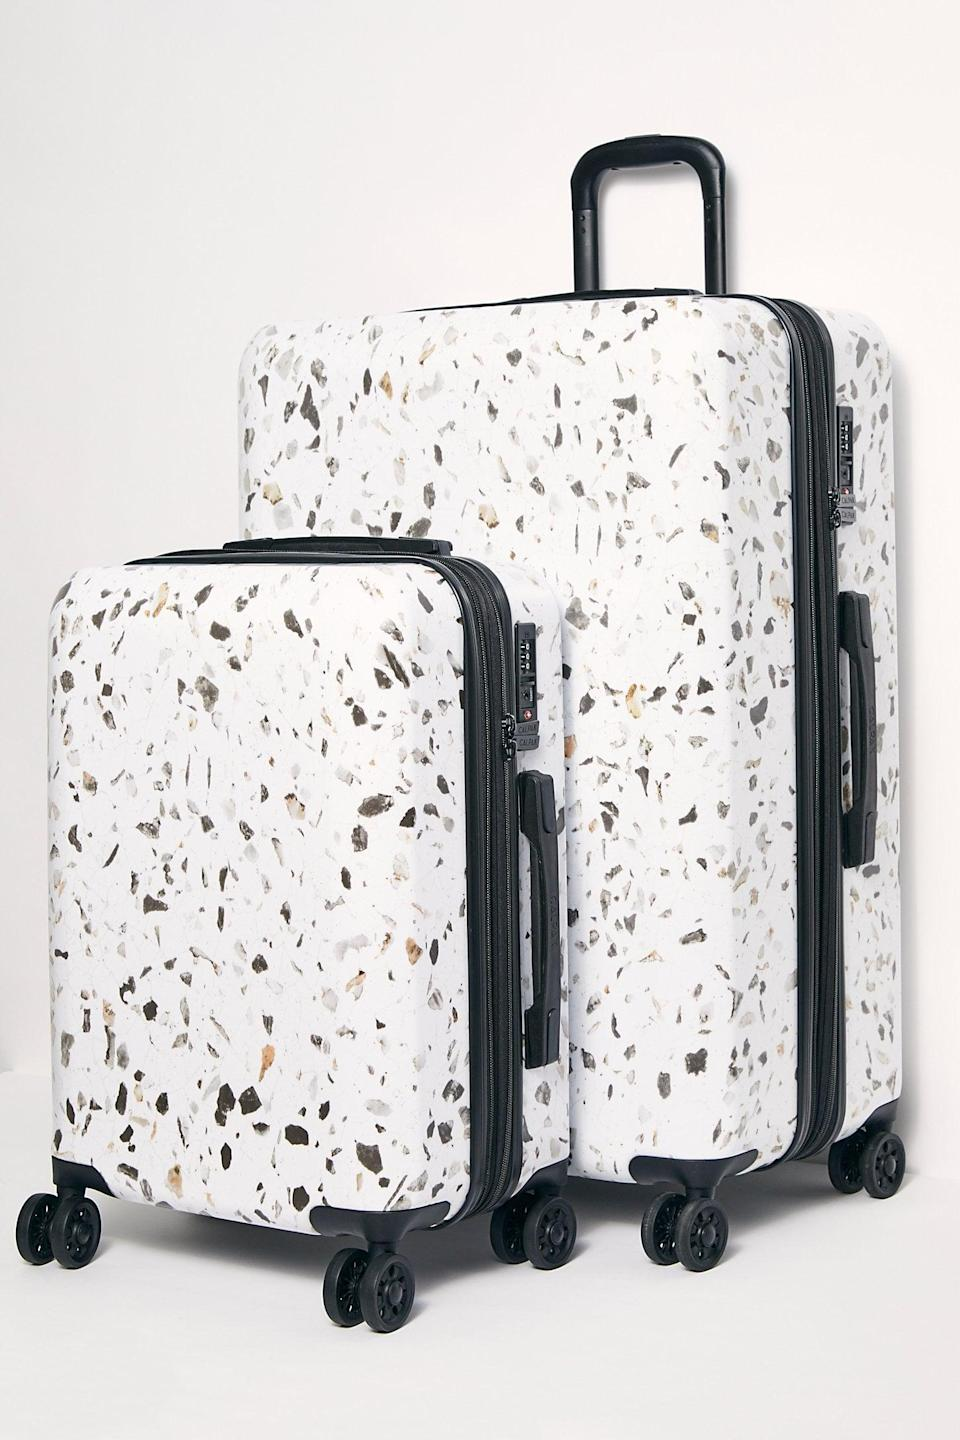 """<p>If they have an upcoming trip, get them this <a href=""""https://www.popsugar.com/buy/Calpak-Terrazzo-Two-Piece-Luggage-527157?p_name=Calpak%20Terrazzo%20Two-Piece%20Luggage&retailer=freepeople.com&pid=527157&price=325&evar1=fab%3Aus&evar9=45460327&evar98=https%3A%2F%2Fwww.popsugar.com%2Ffashion%2Fphoto-gallery%2F45460327%2Fimage%2F46978008%2FCalpak-Terrazzo-Two-Piece-Luggage&list1=shopping%2Cgifts%2Cfree%20people%2Choliday%2Cgift%20guide%2Cgifts%20for%20women&prop13=api&pdata=1"""" class=""""link rapid-noclick-resp"""" rel=""""nofollow noopener"""" target=""""_blank"""" data-ylk=""""slk:Calpak Terrazzo Two-Piece Luggage"""">Calpak Terrazzo Two-Piece Luggage</a> ($325) set.</p>"""